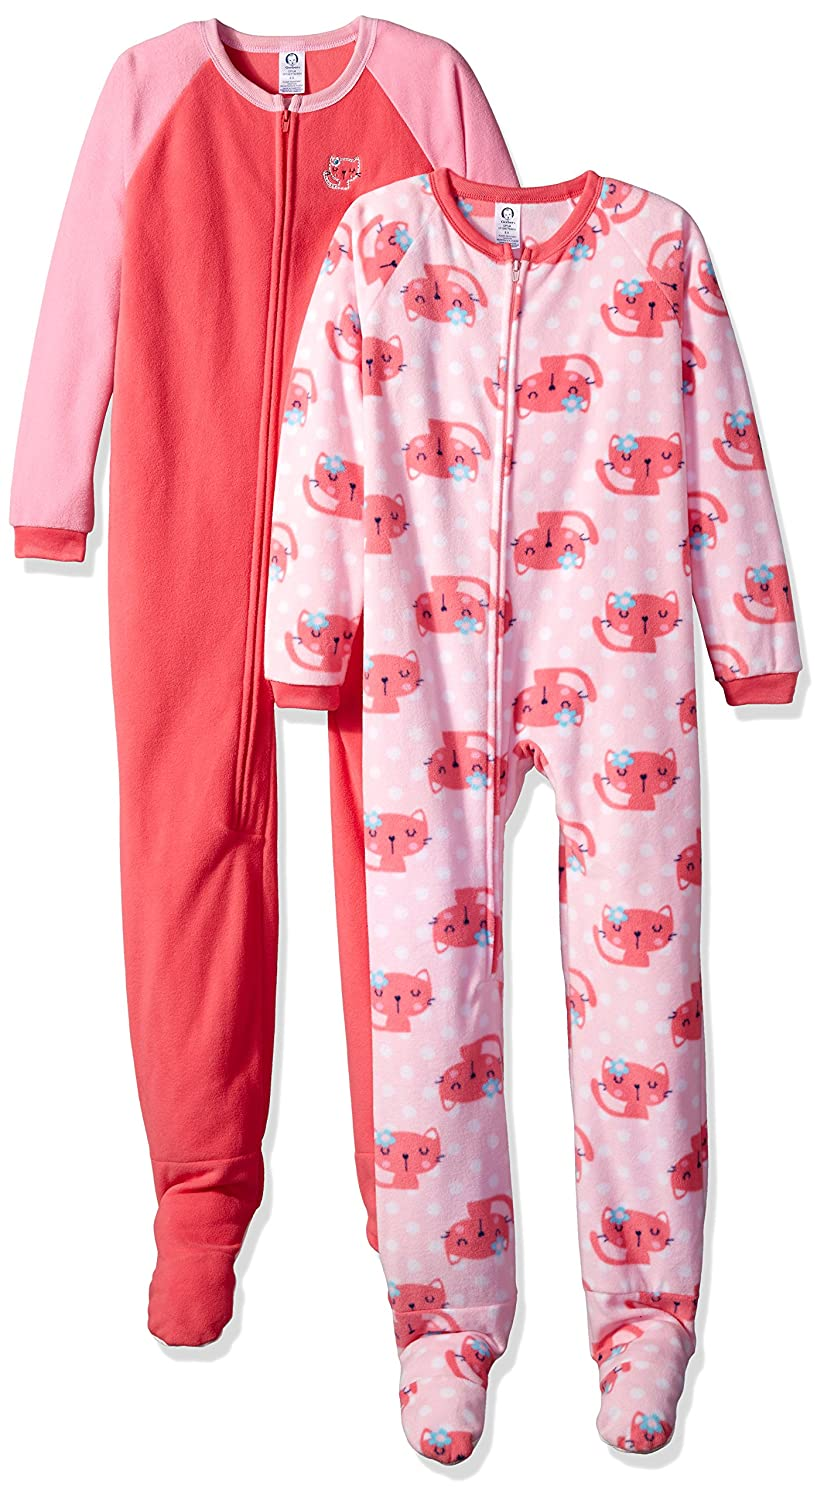 Gerber Girl's Blanket Sleepers (2 Pack) Gerber Children' s Apparel